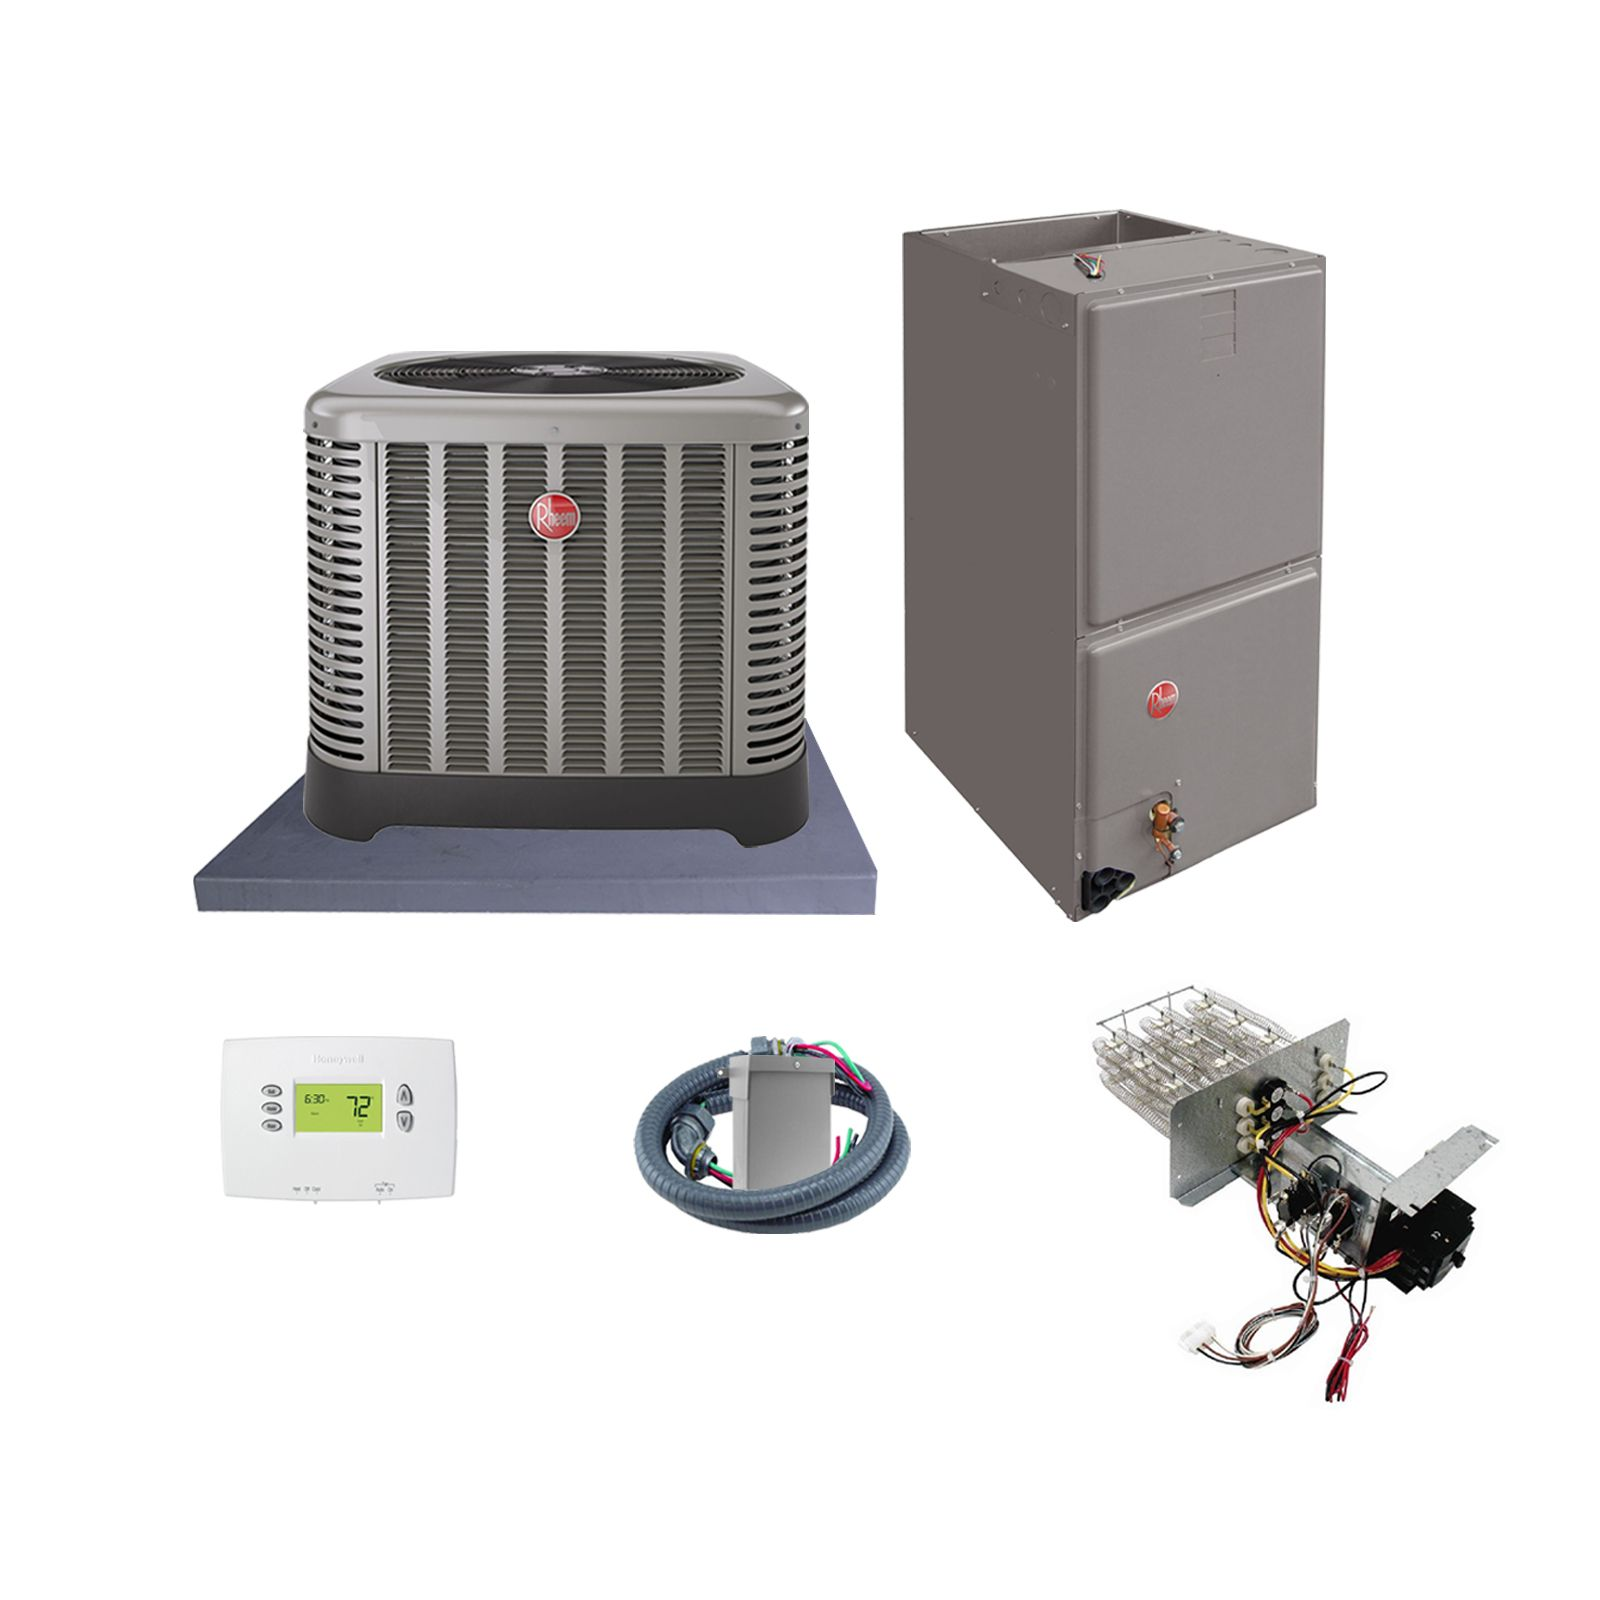 Rheem (AHRI 7491806) 3 Ton, 14 SEER/11.5 EER Classic Series, Horizontal Air Conditioner Split System and Install Kit